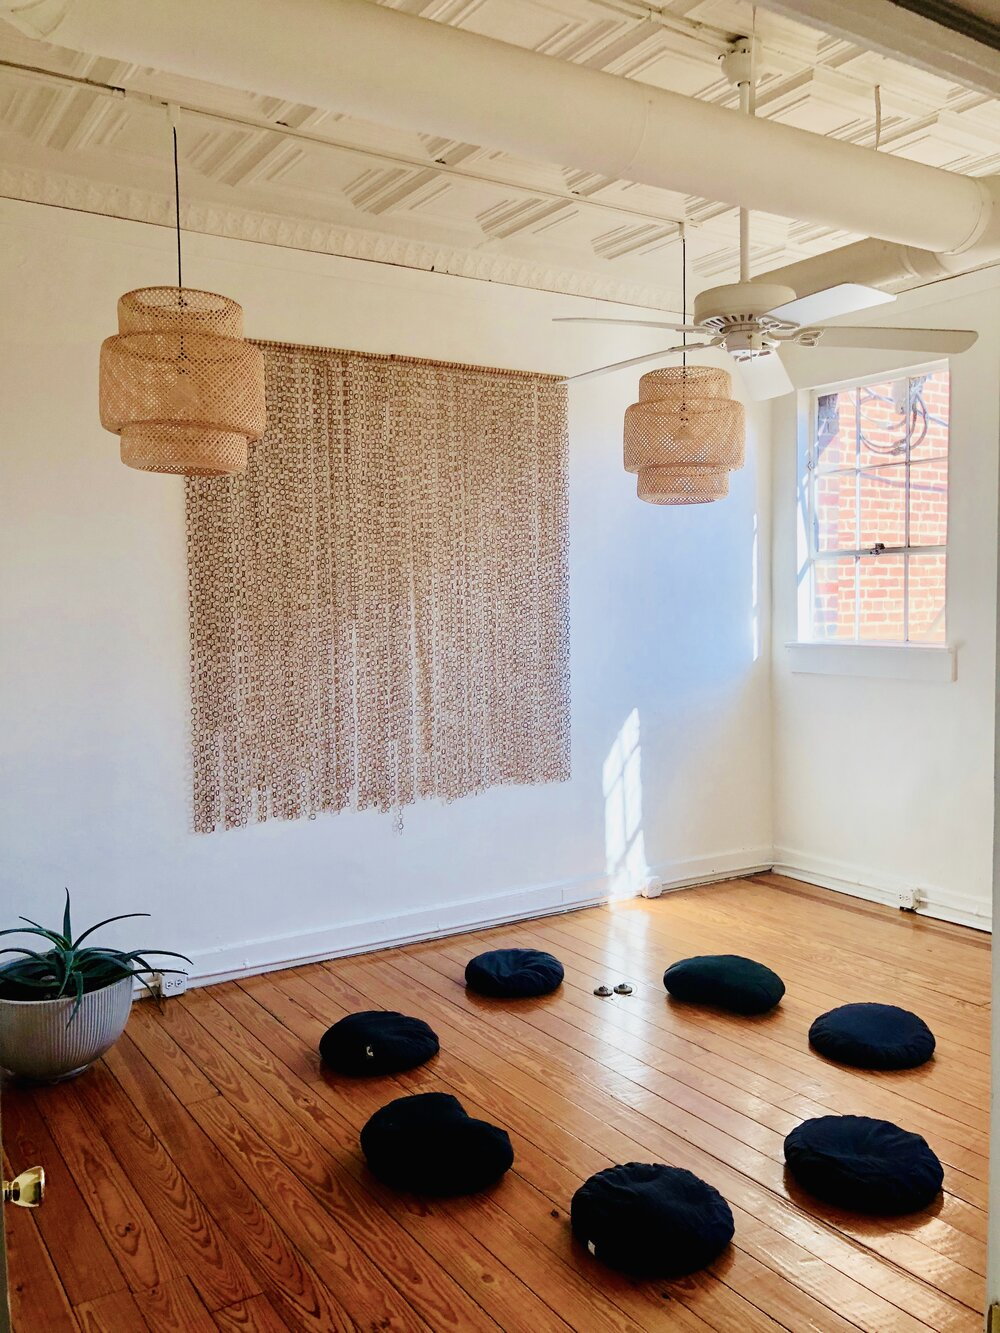 "Mar 24<br/><a href=""http://www.ashtangayogarichmond.com/workshops-and-events/"">Spring Equinox Ashtanga Basics with Beats</a>"